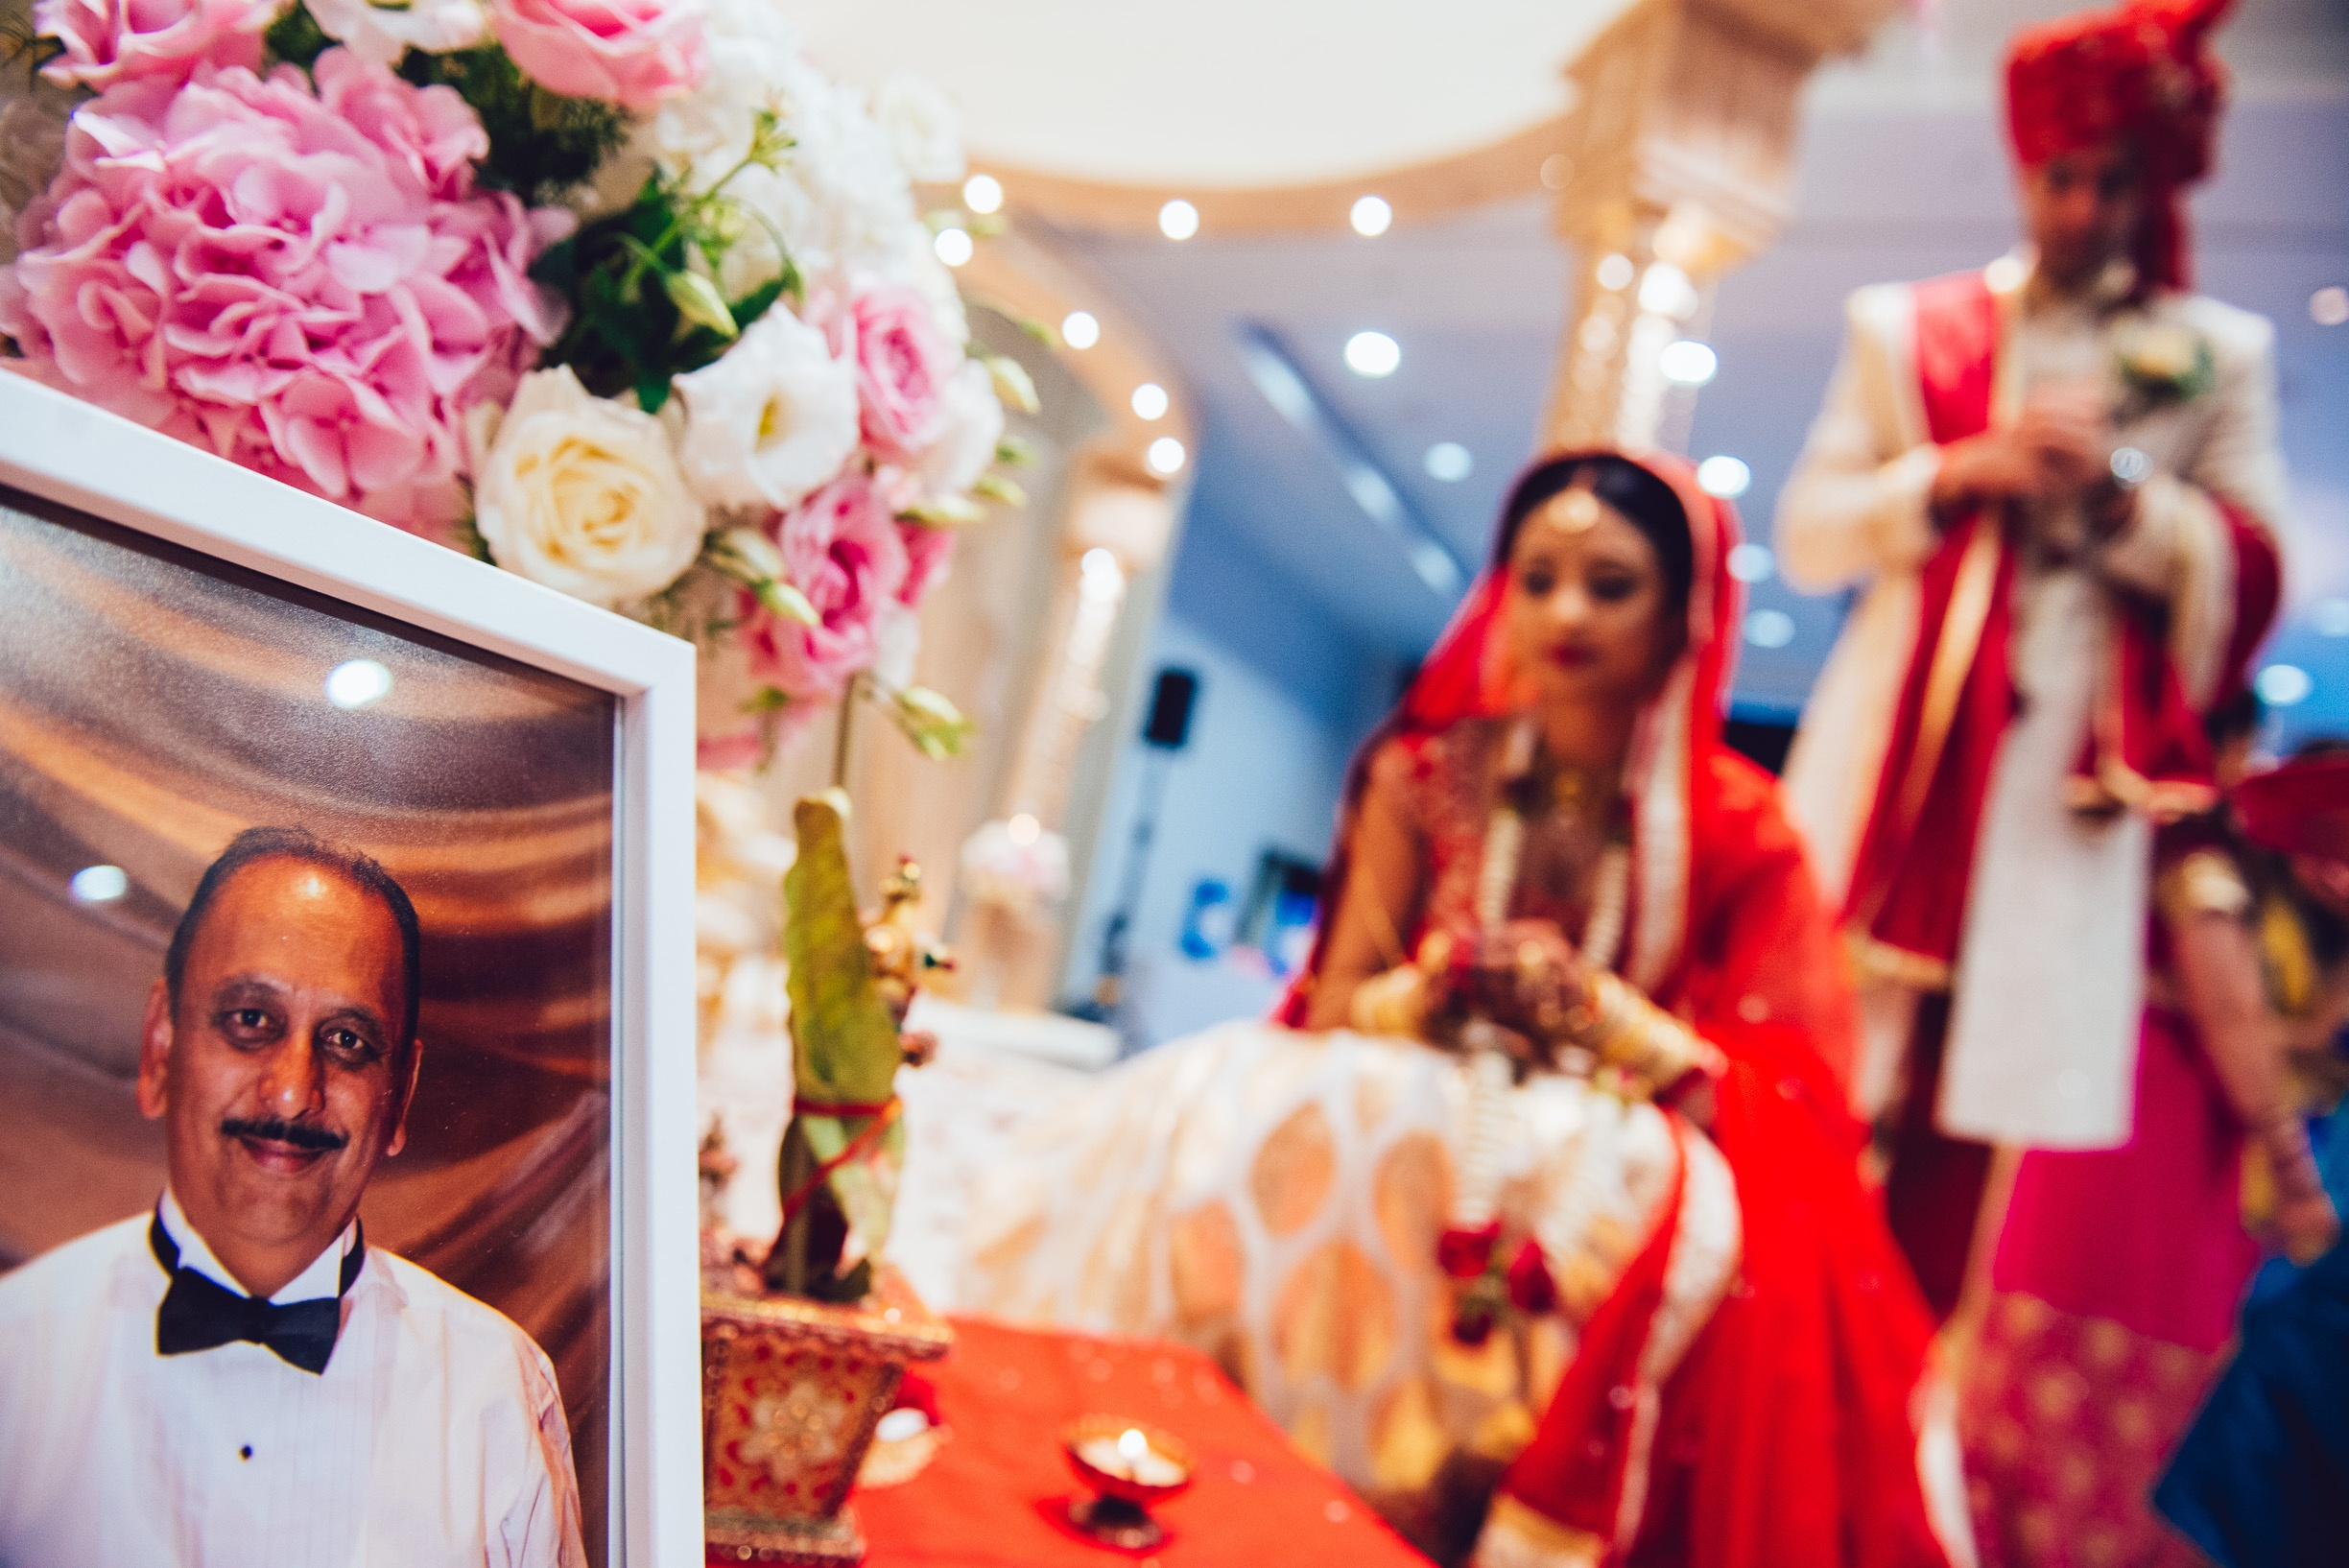 amit&ceema_eden_moments_wedding_photography-20